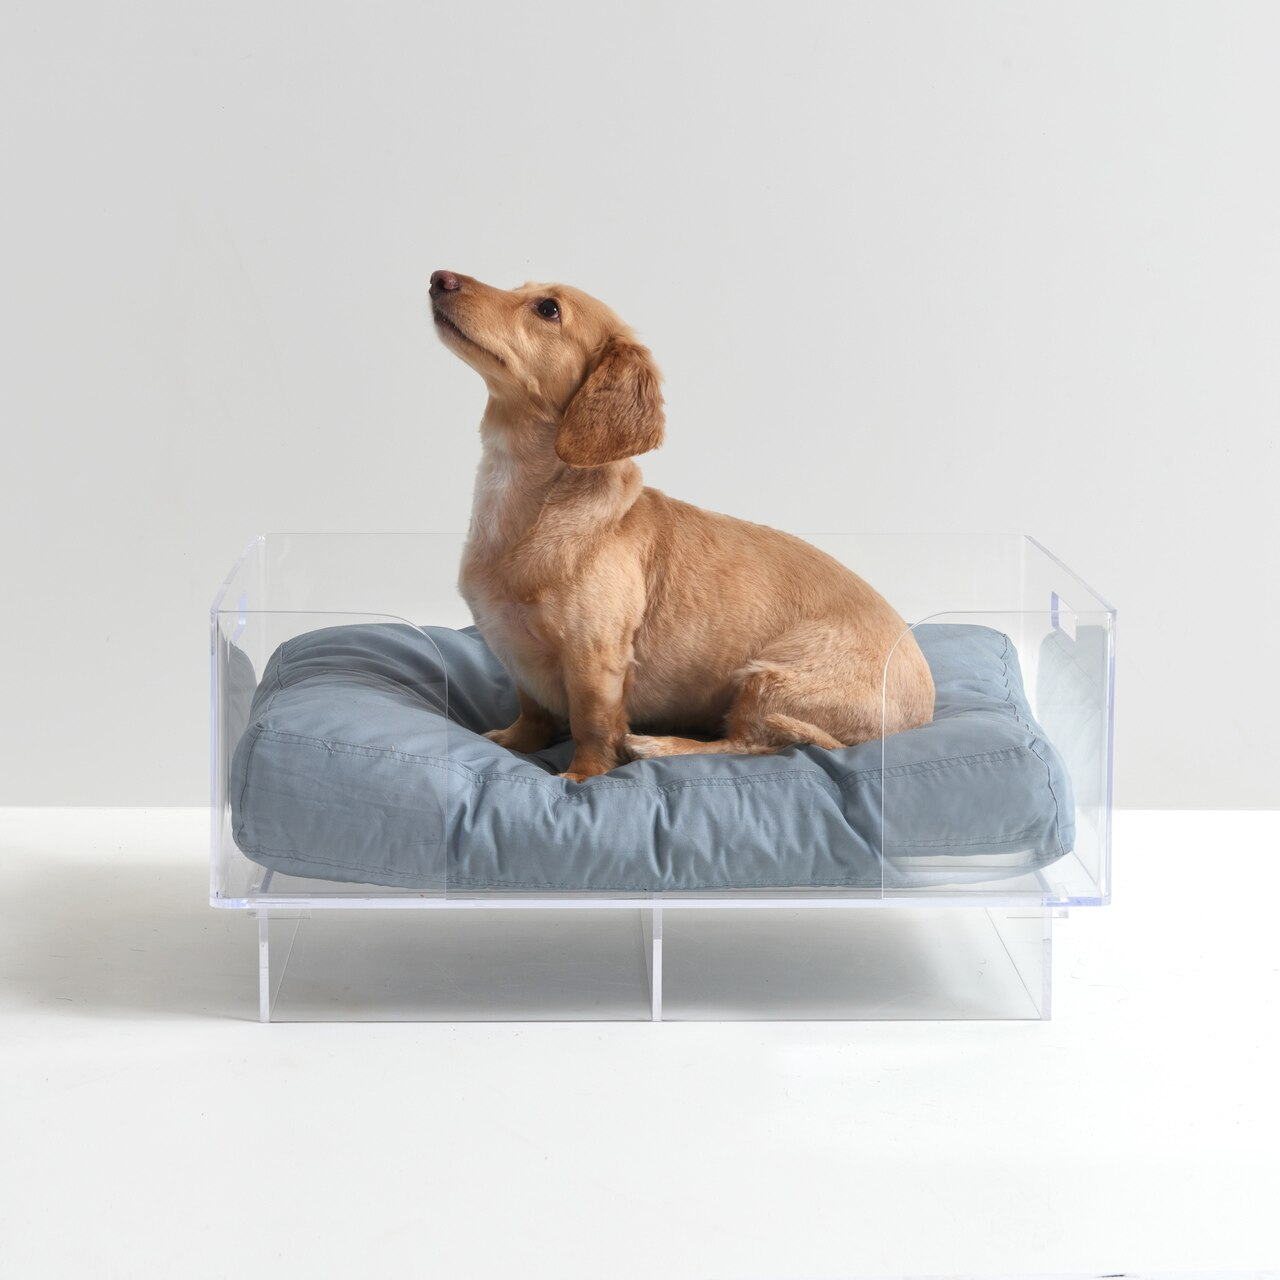 clear-acrylic-lucite-modern-pet-dog-raised-bed-luxury-designer.jpg